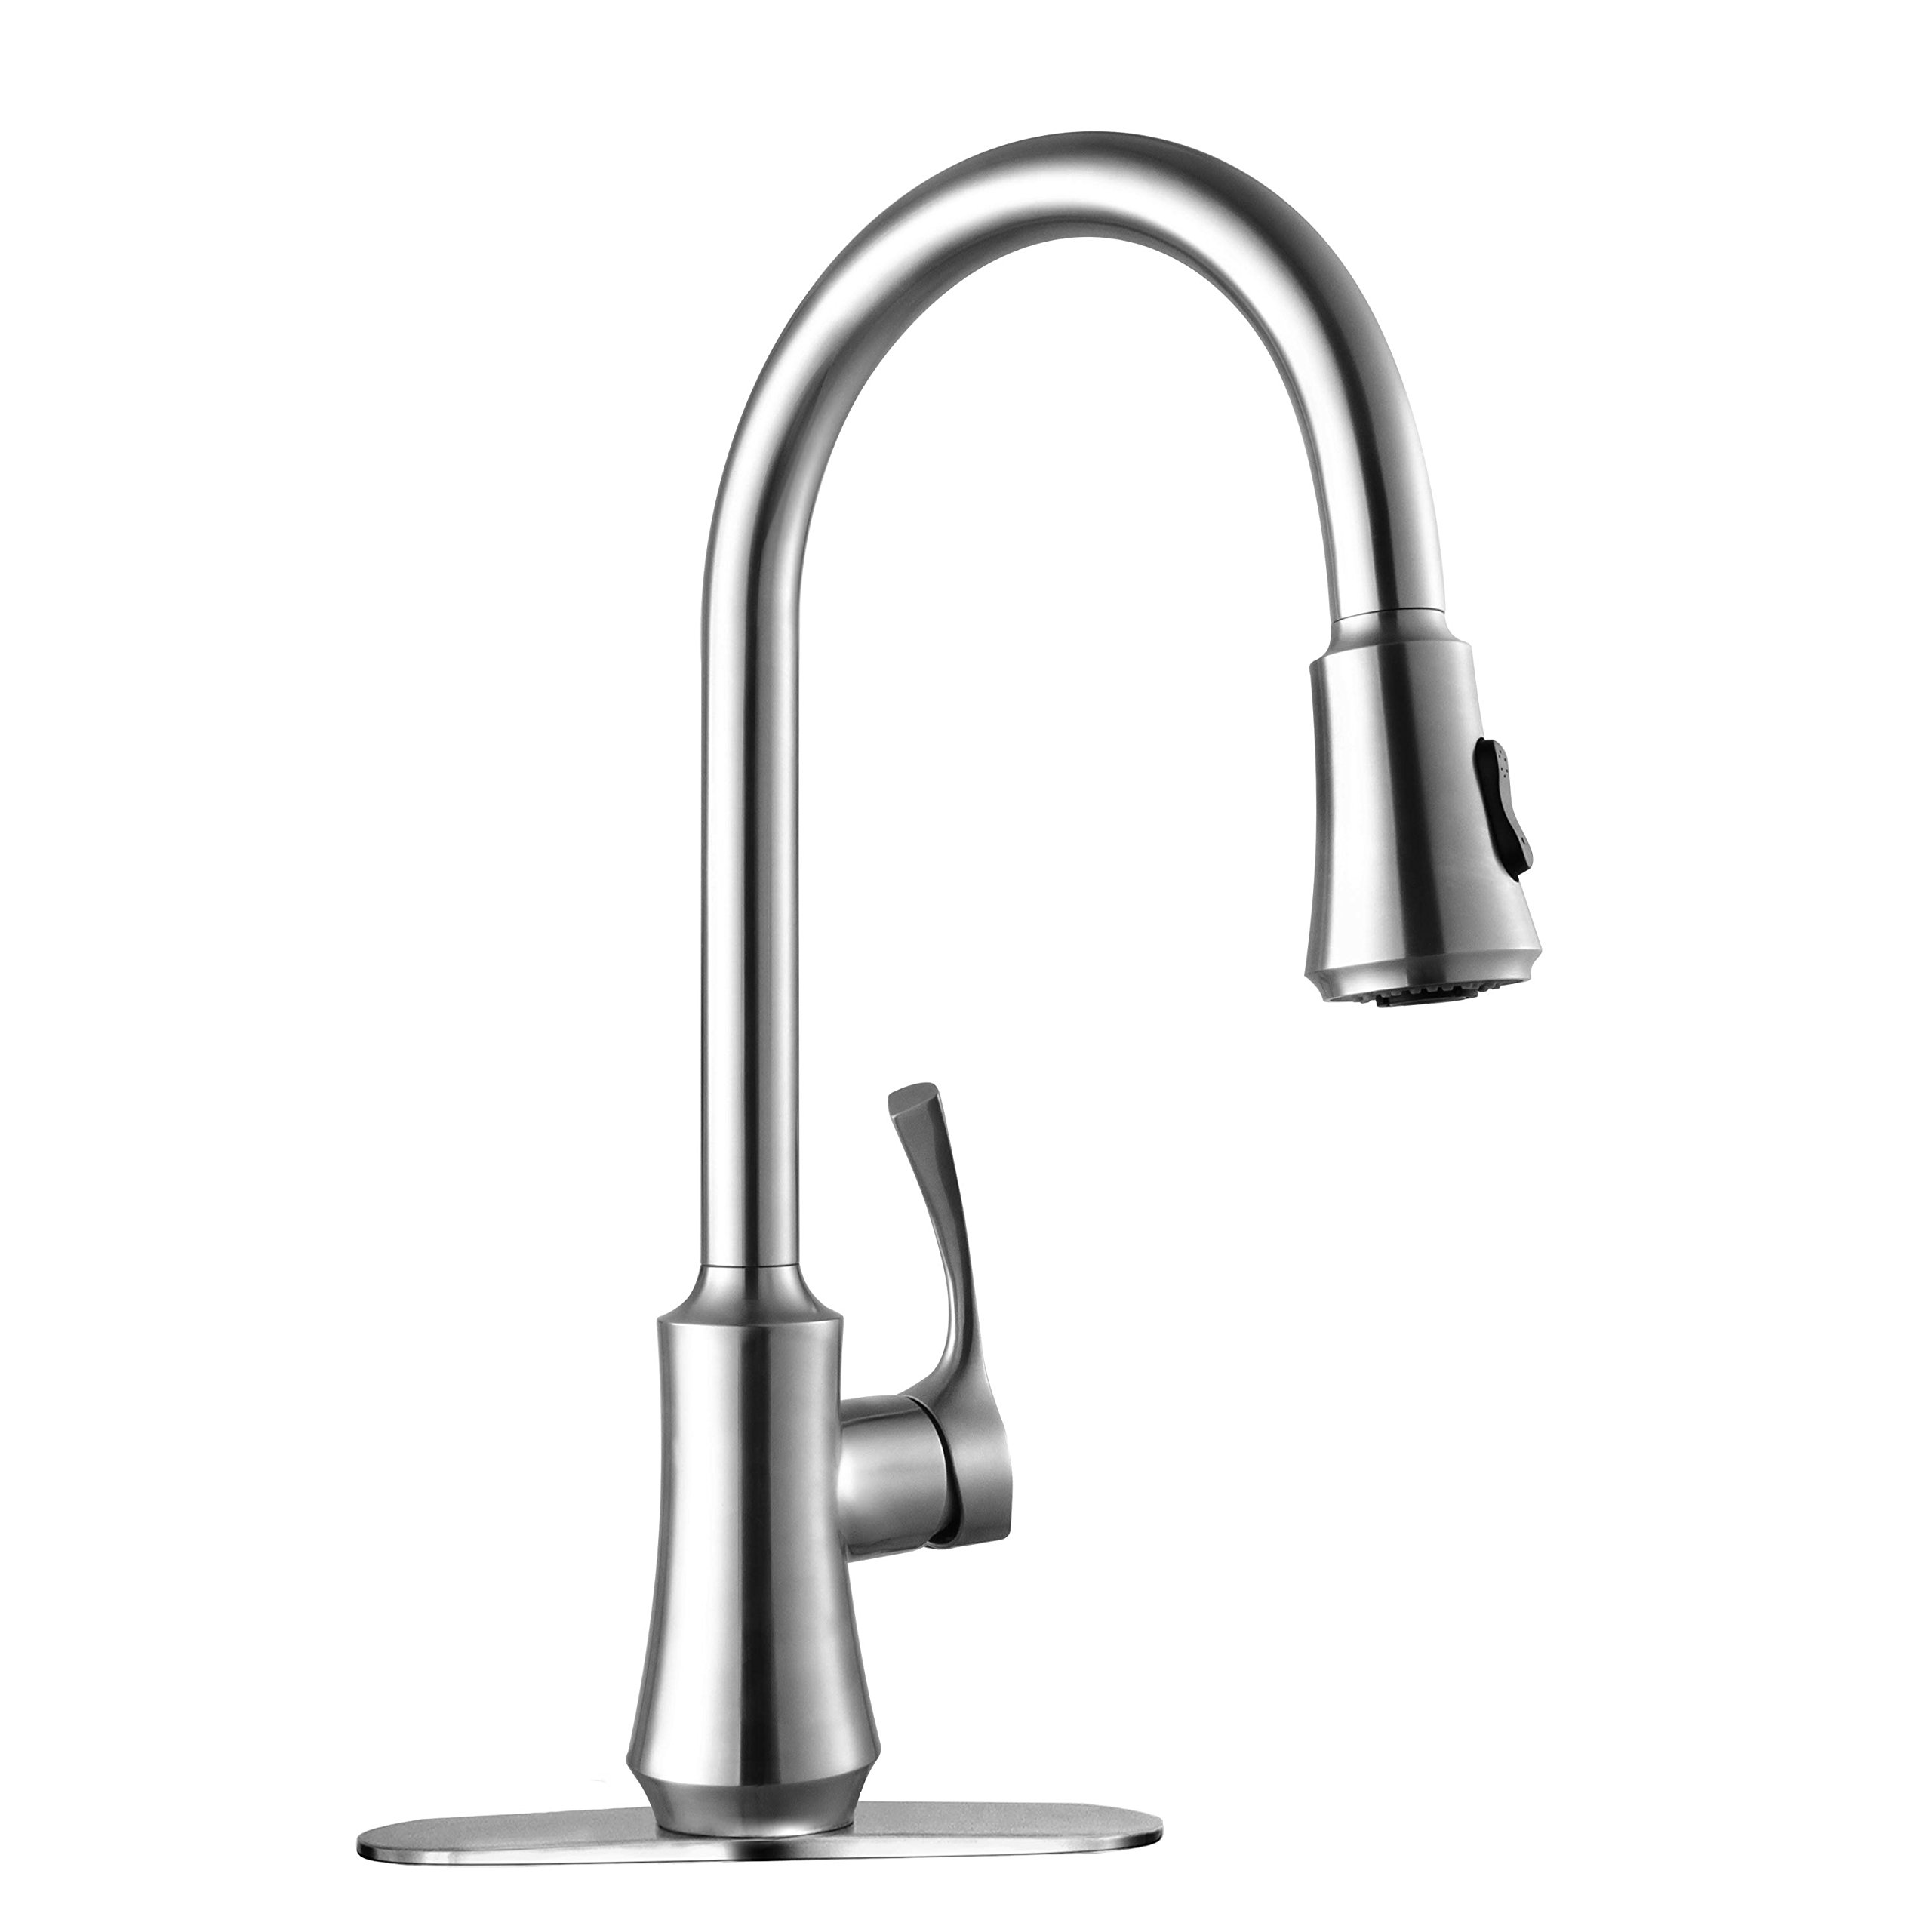 faucet shallow steel sinks oversized drainboard cheap sink options beautify models mount rated faucets stainless your standard with undermount kitchen top sizes